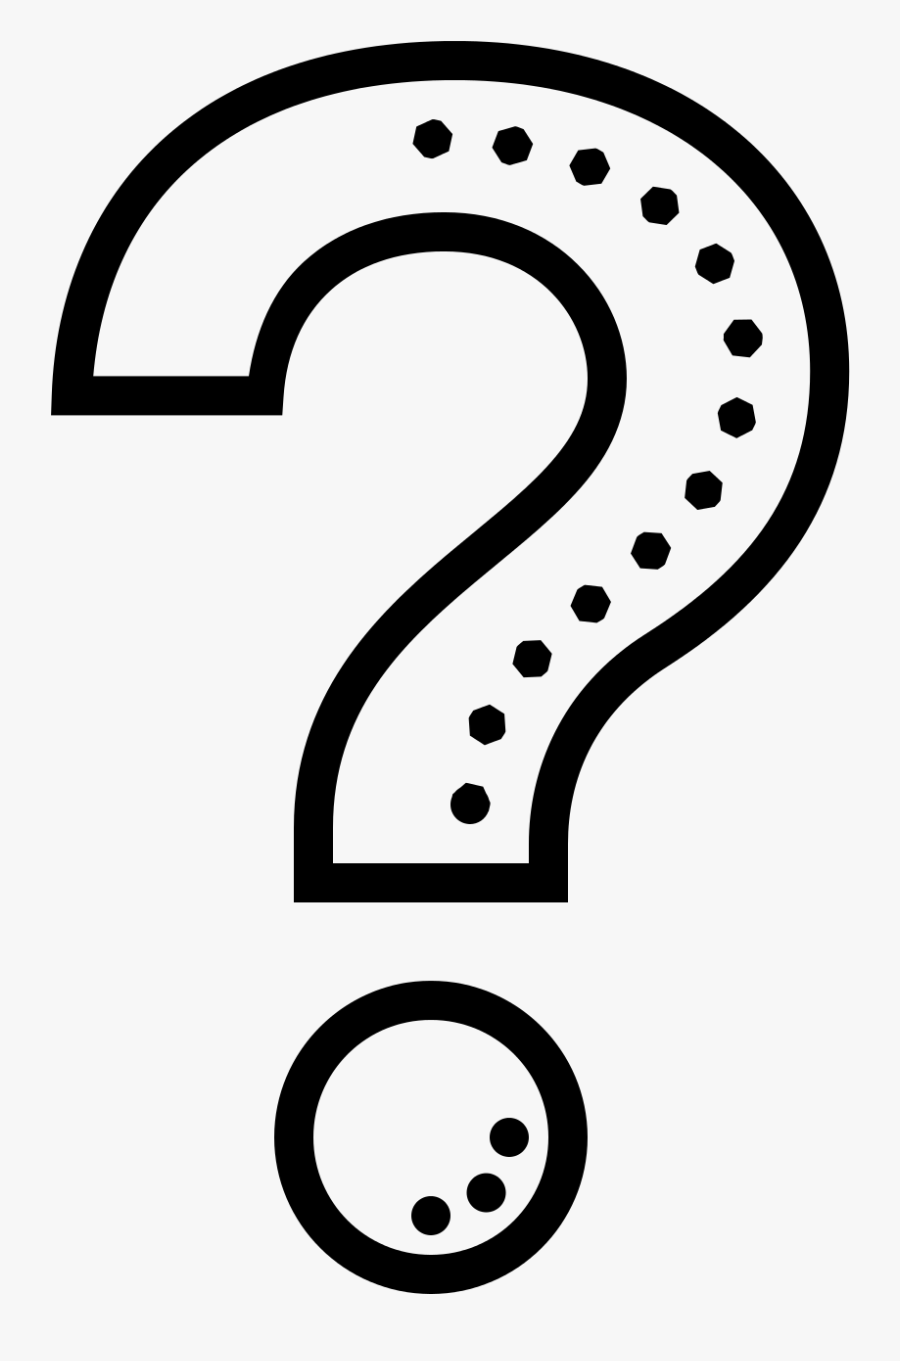 Cute Question Mark Png Download - Black And White Png Question Mark, Transparent Clipart